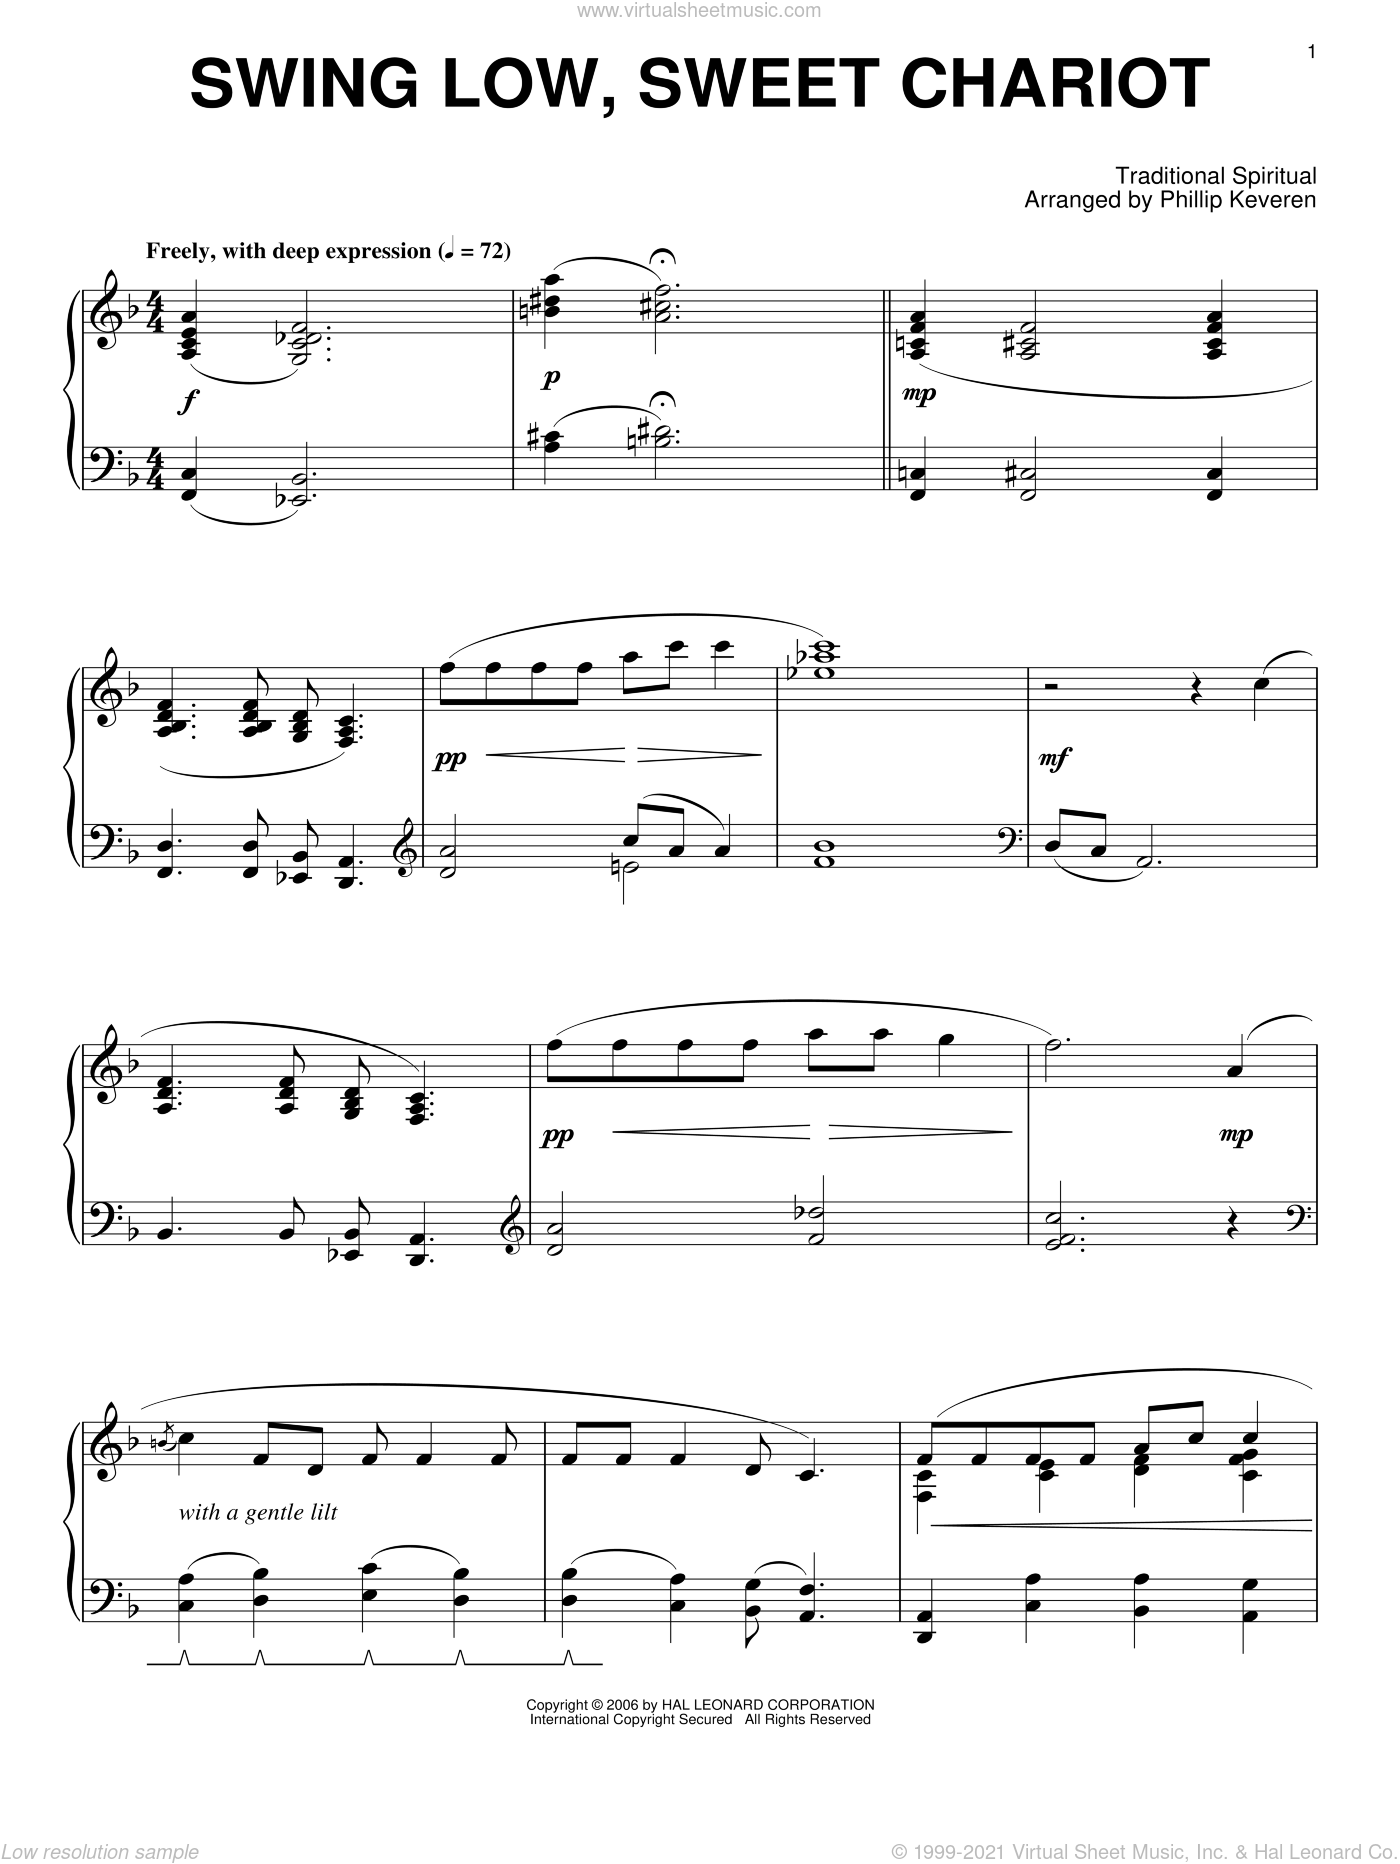 Swing Low, Sweet Chariot sheet music for piano solo, intermediate skill level